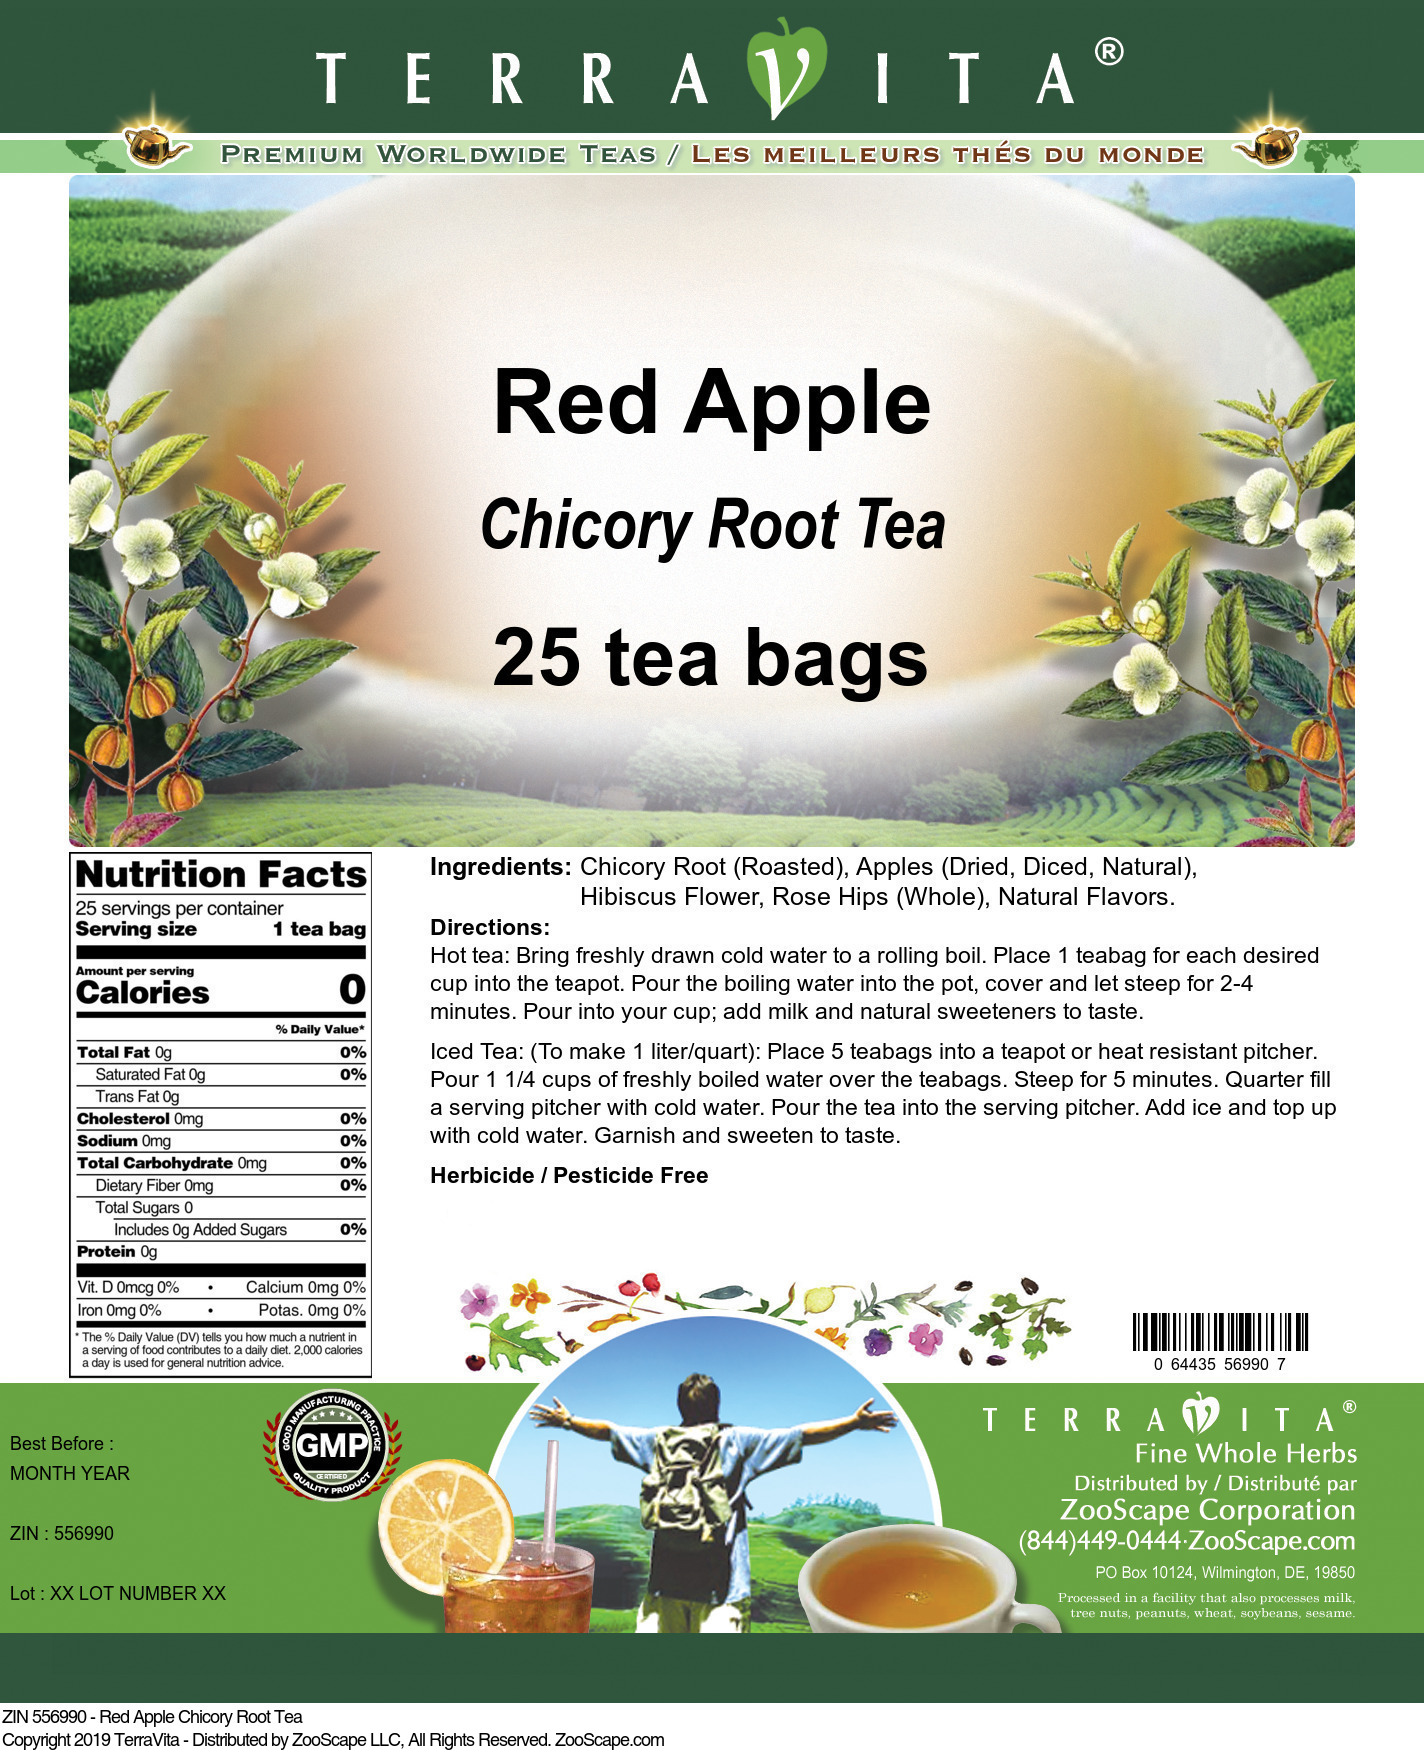 Red Apple Chicory Root